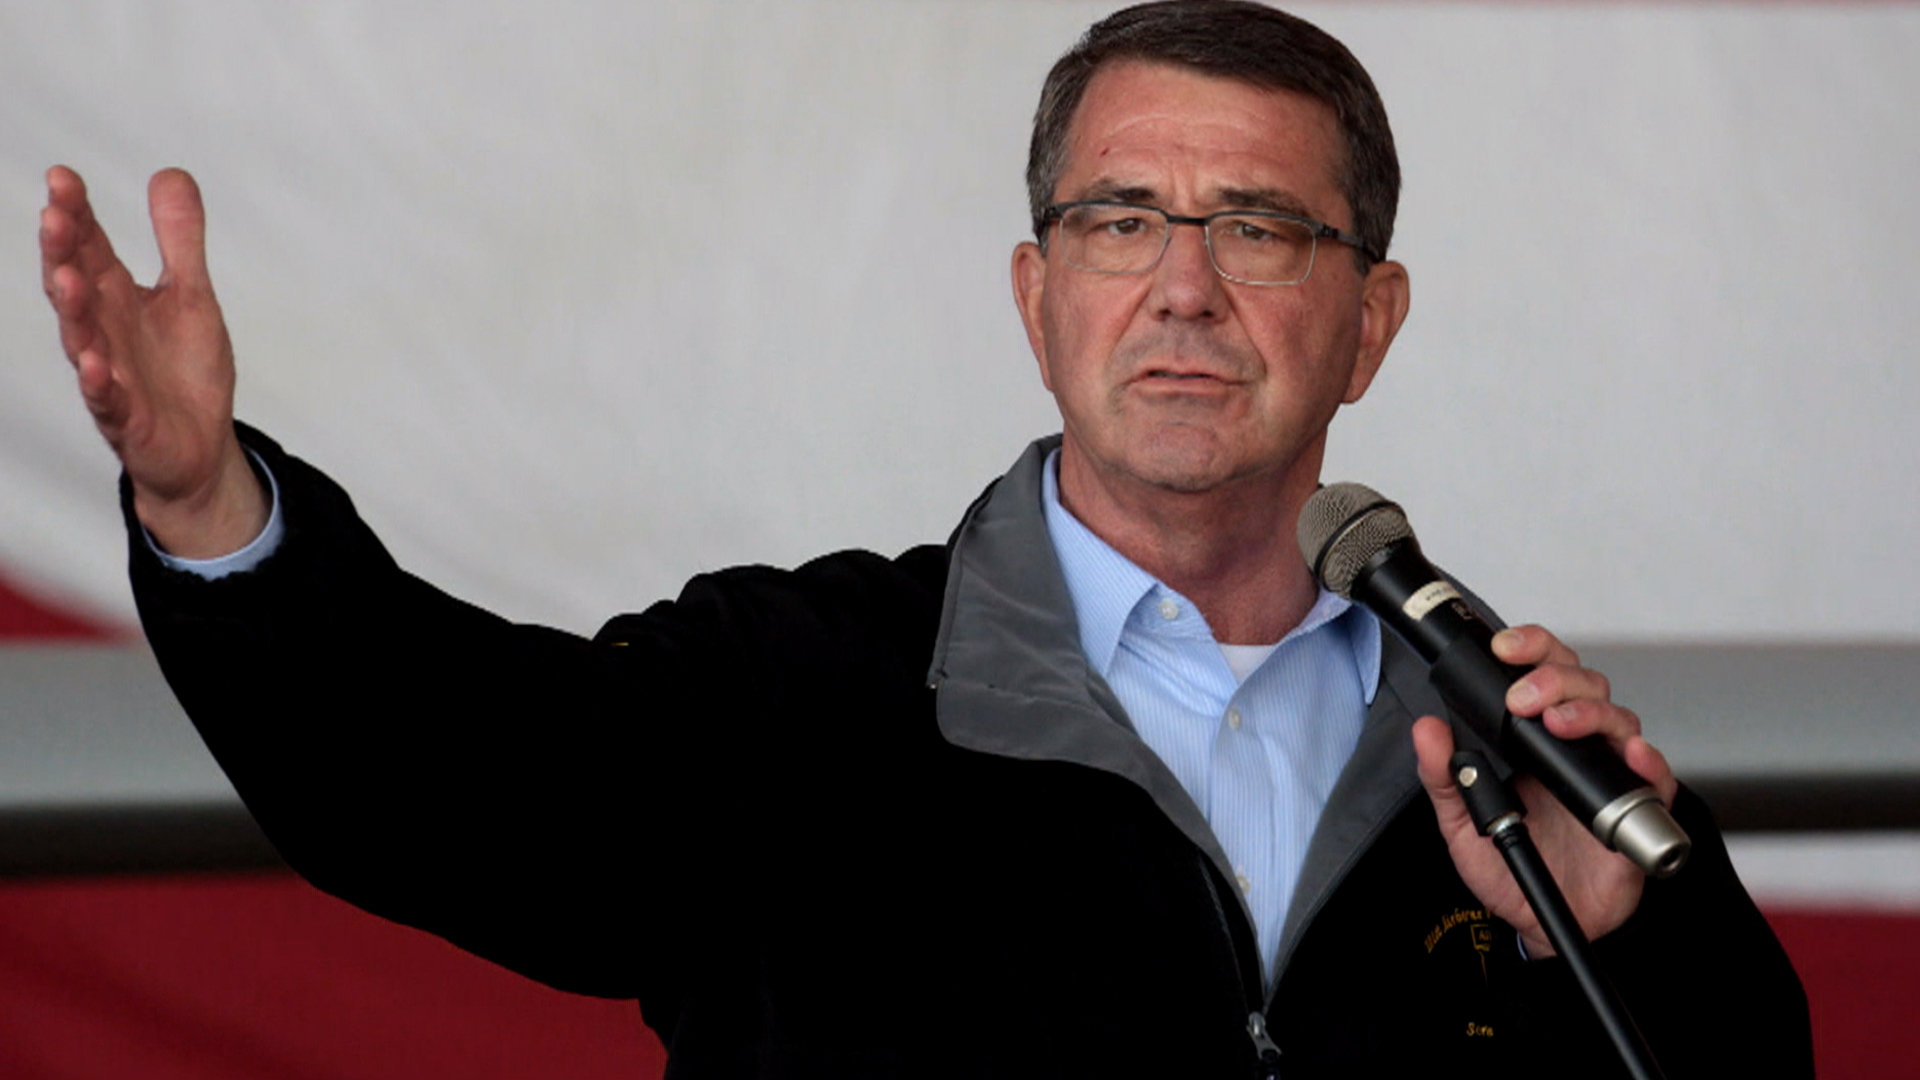 Defense Secretary Ash Carter Used Personal Email for Work: Pentagon